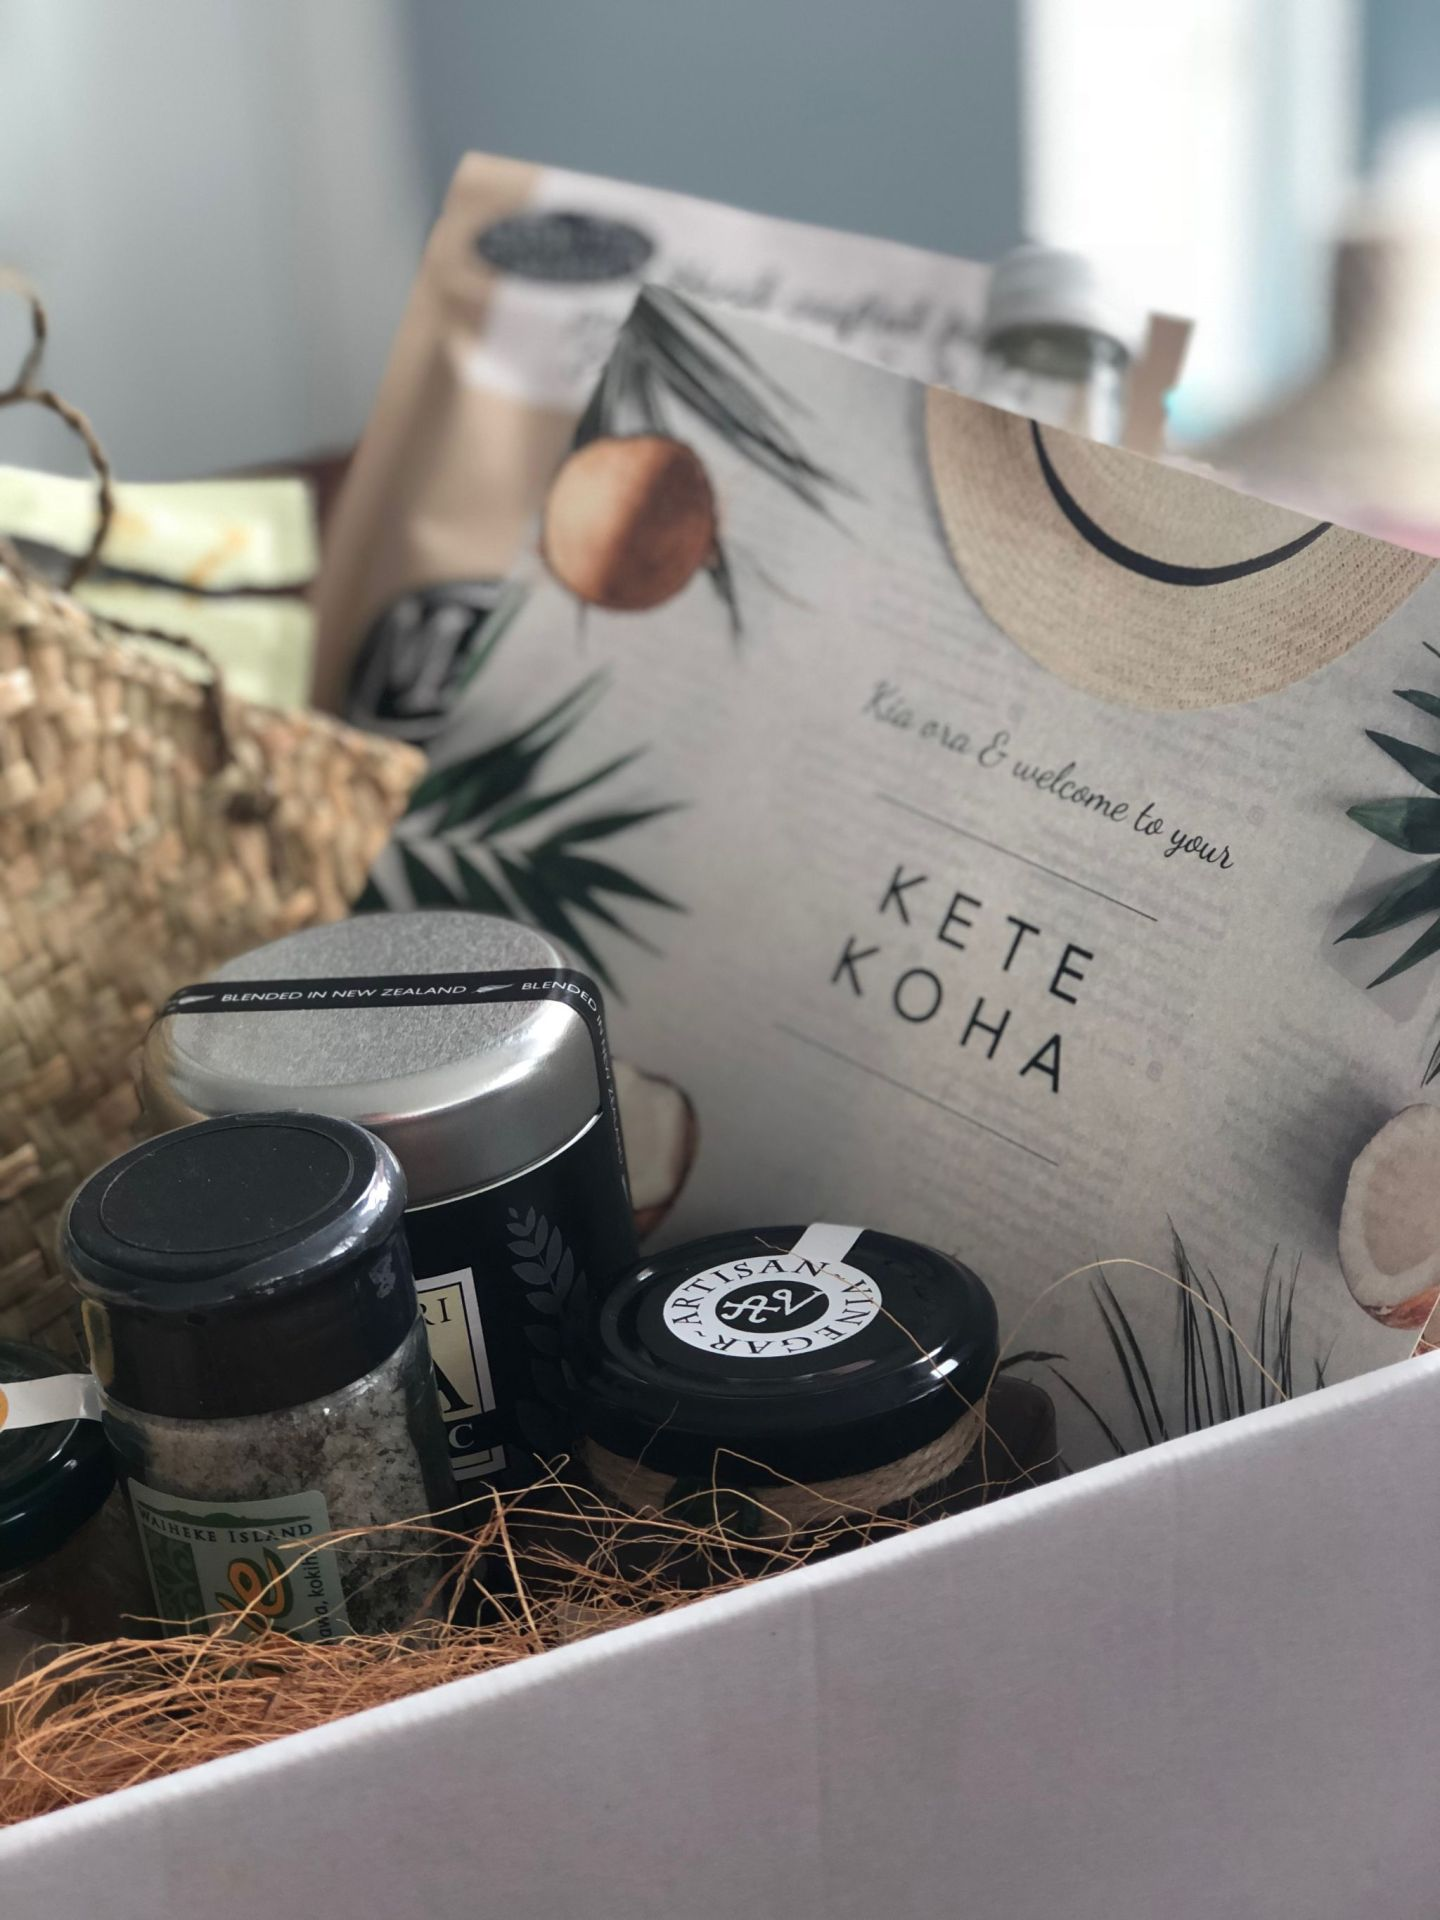 Why KeteKoha is the must have subscription box